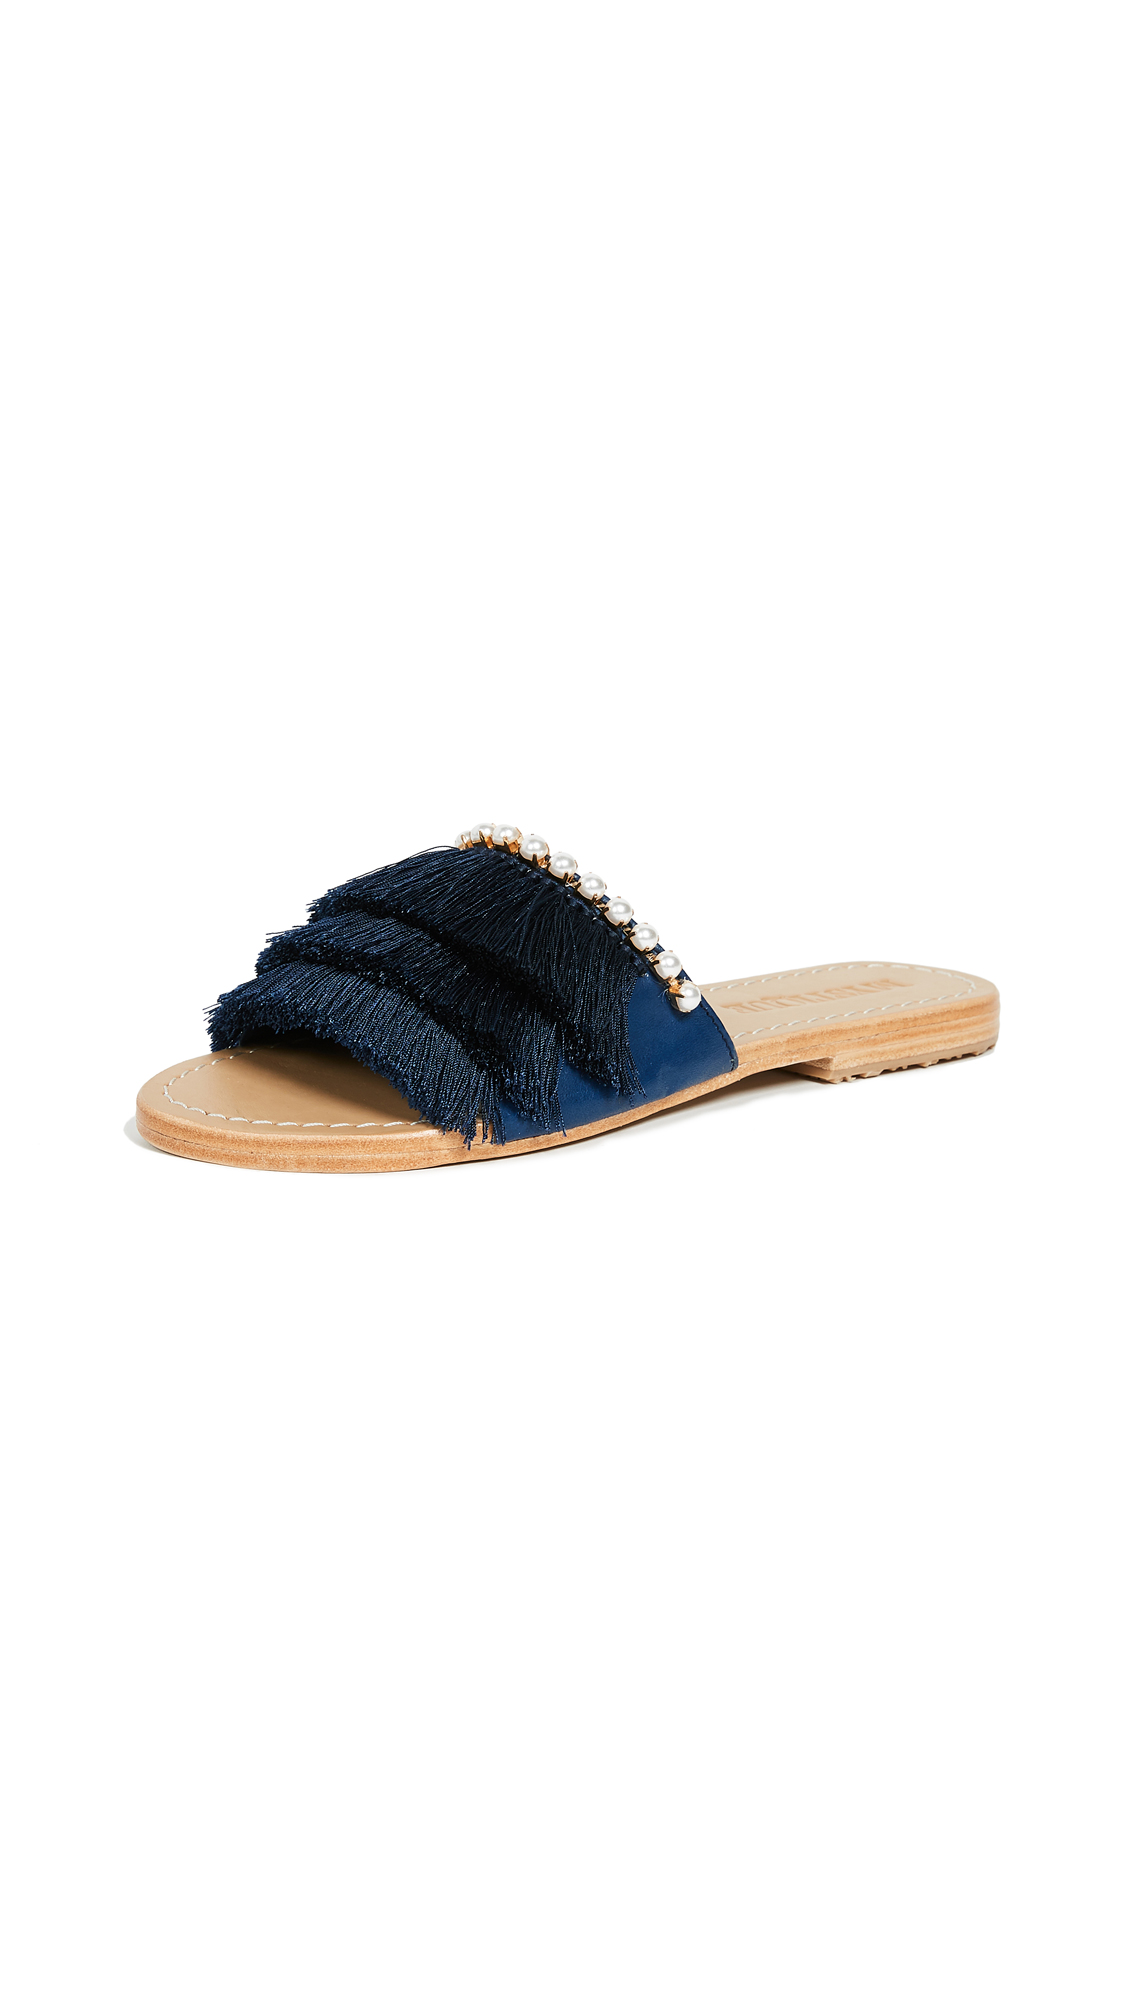 Mystique Fringe Slides with Imitation Pearls - Navy